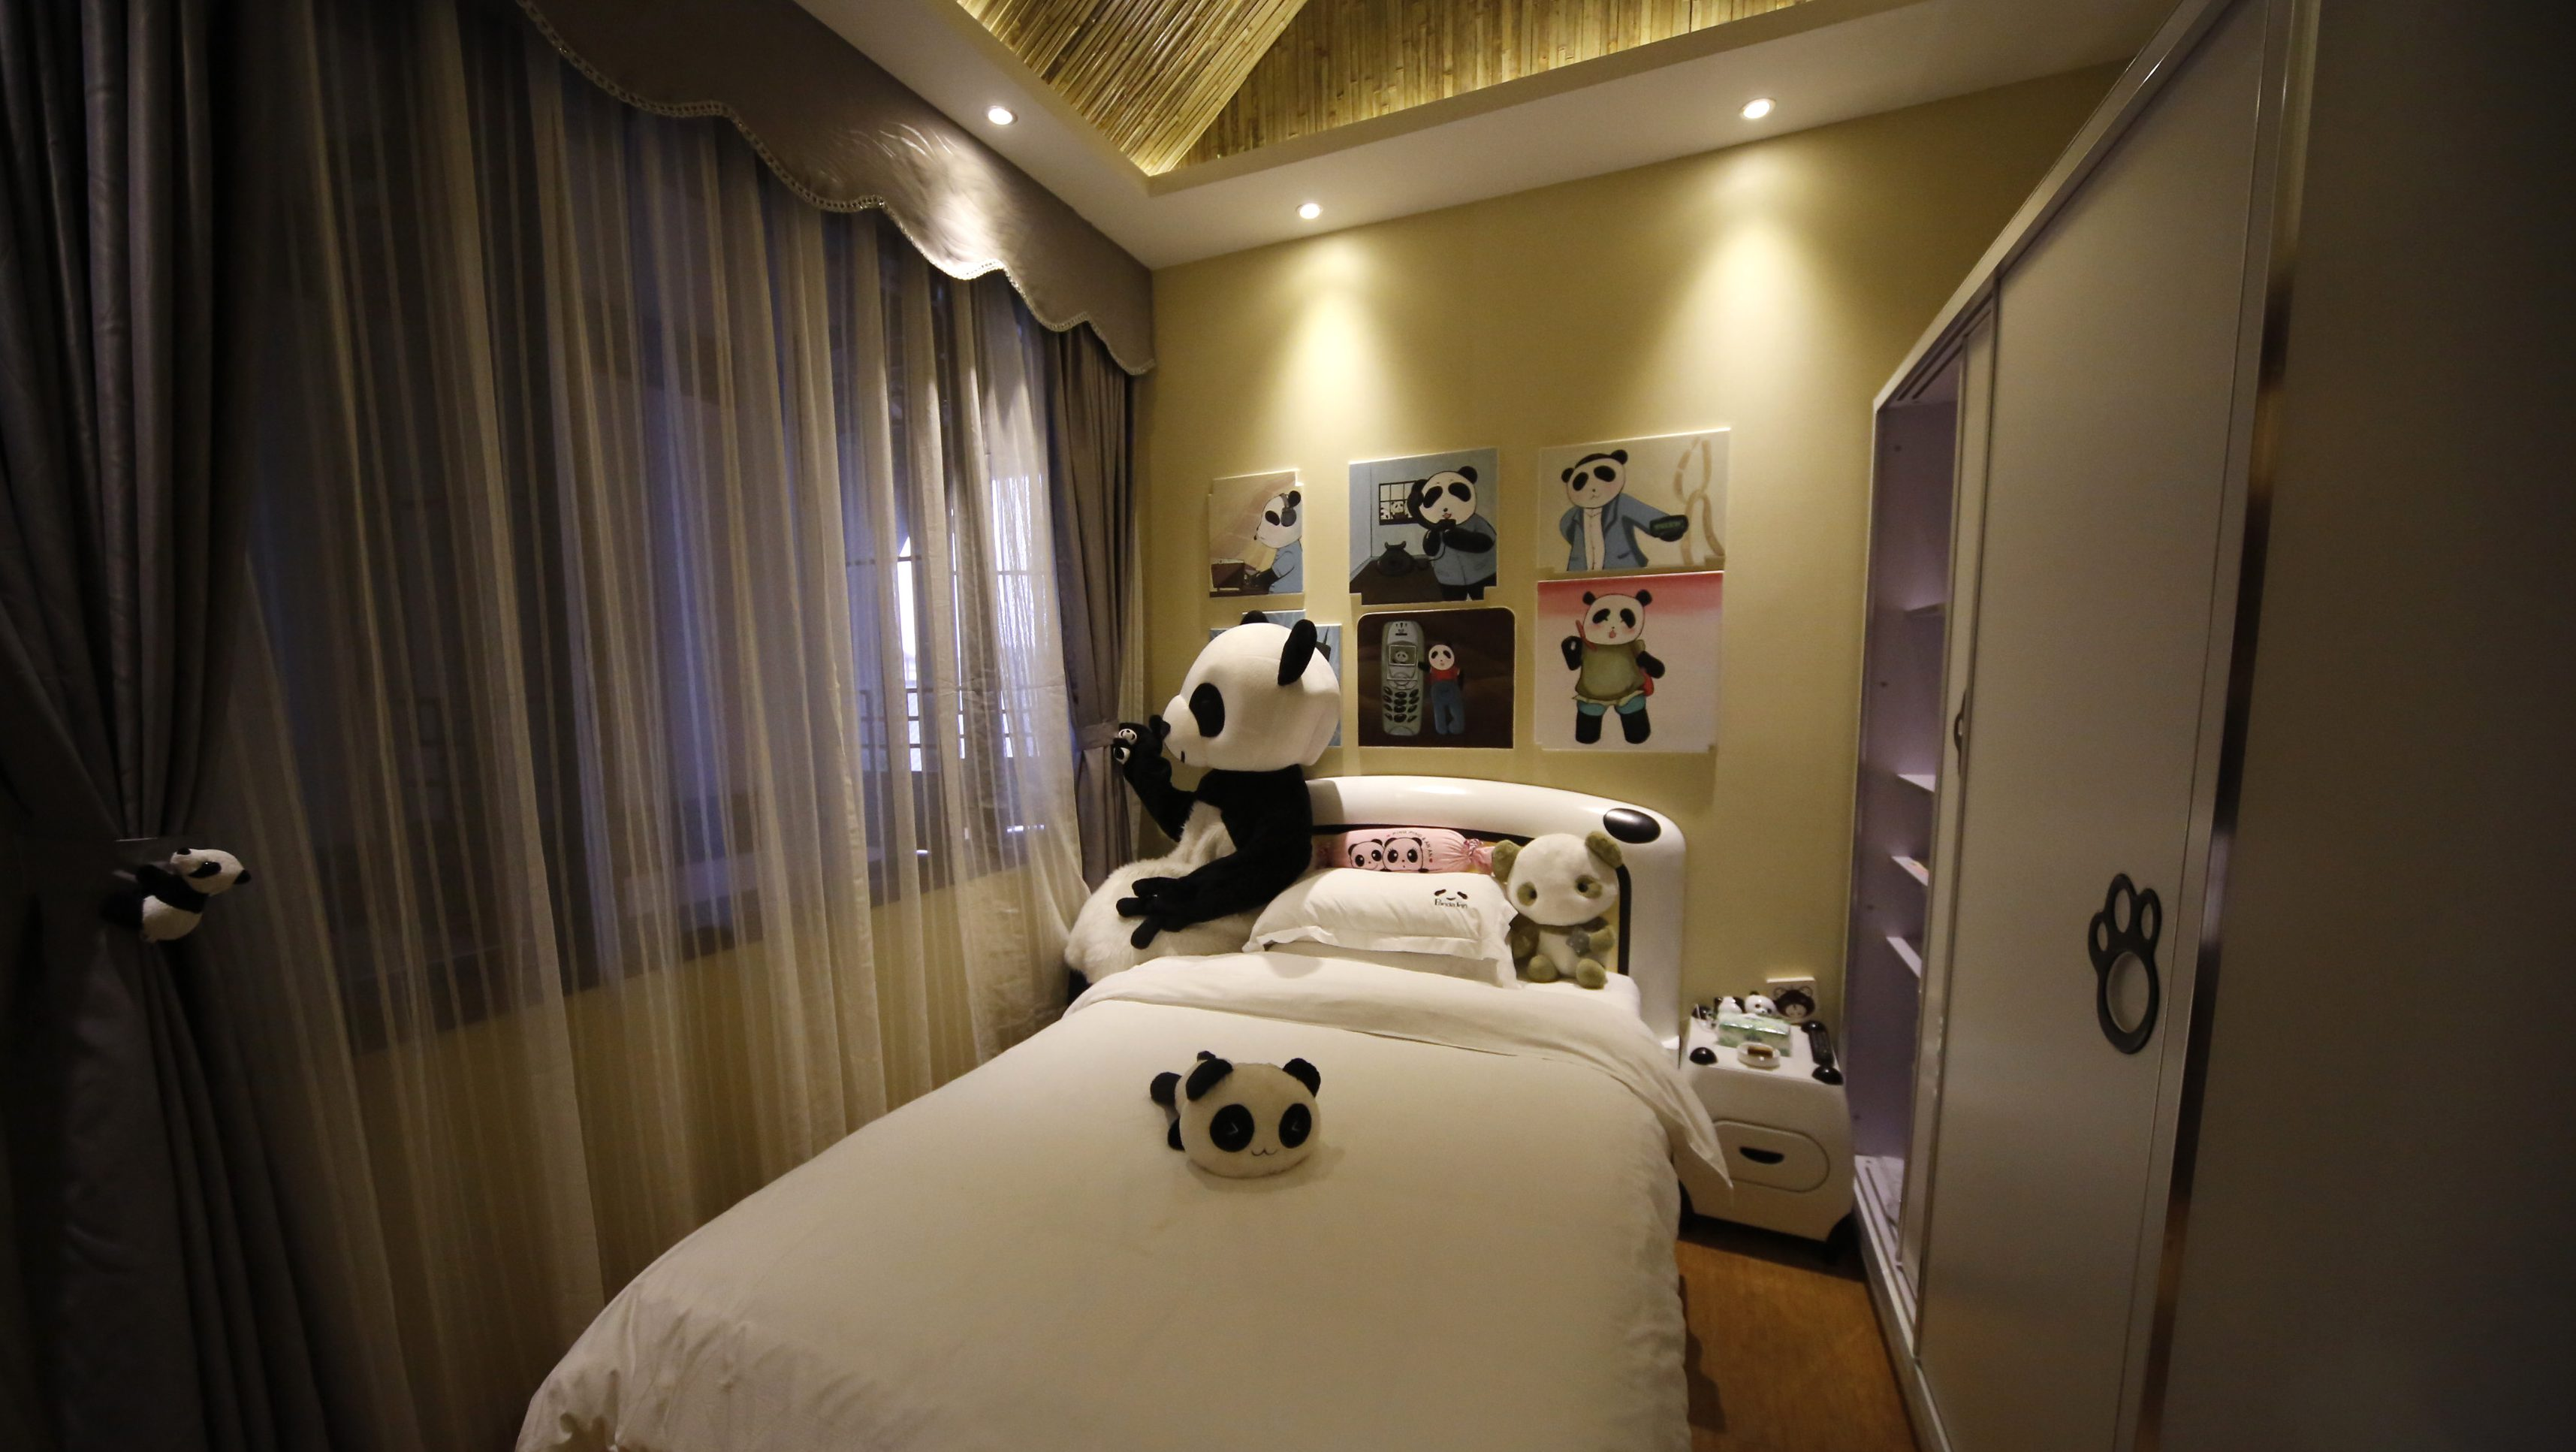 An employee dressed in a panda costume poses for a photo during the soft opening of a panda-themed hotel at the foot of Emei Mountain, Southwest China's Sichuan province, February 25, 2013. According to local media, the hotel is the first panda-themed hotel in the world and will officially open in May with room rates from 300  to 500 yuan ($48 to $80) per night. Picture taken February 25, 2013.